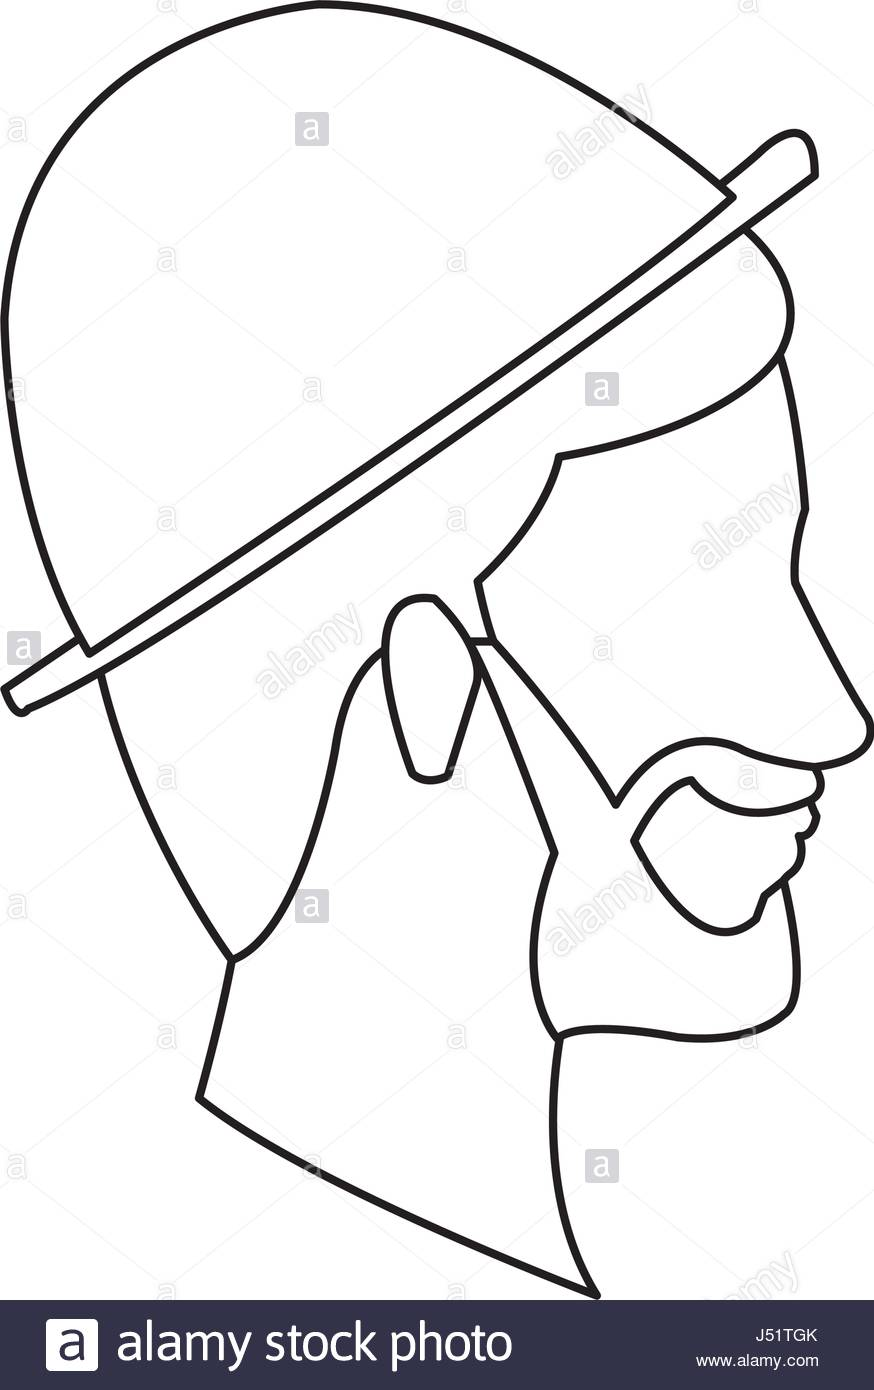 874x1390 Bearded Head Man Profile With Hat Outline Stock Vector Art